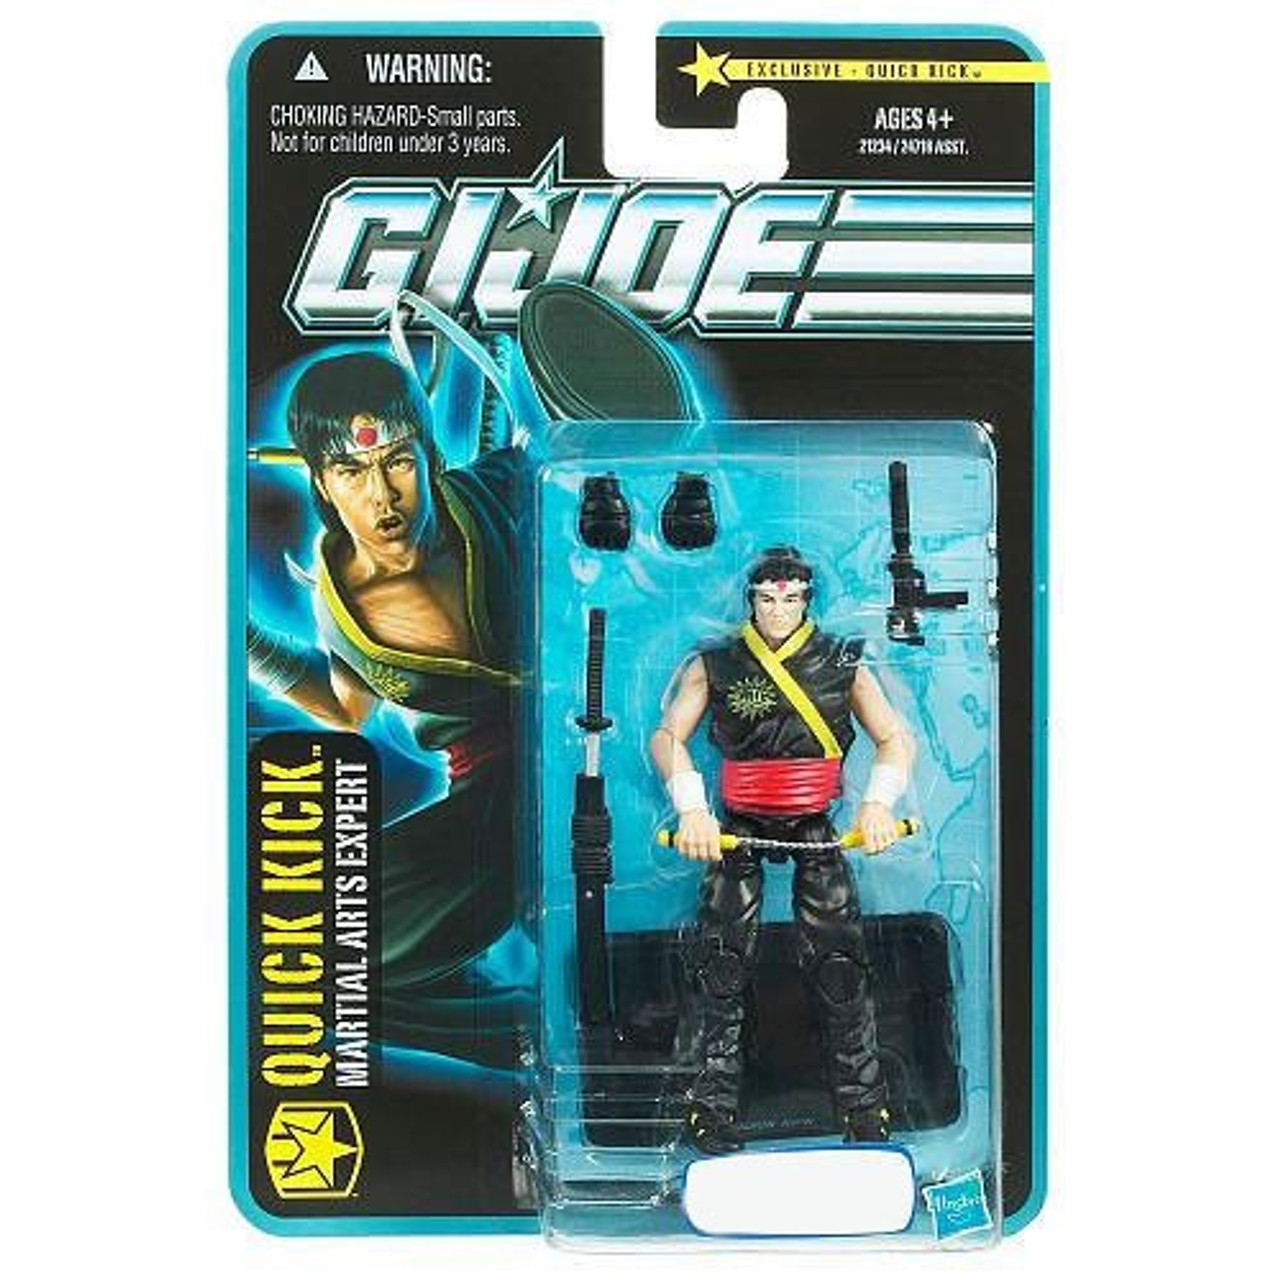 GI Joe Quick Kick Exclusive Action Figure